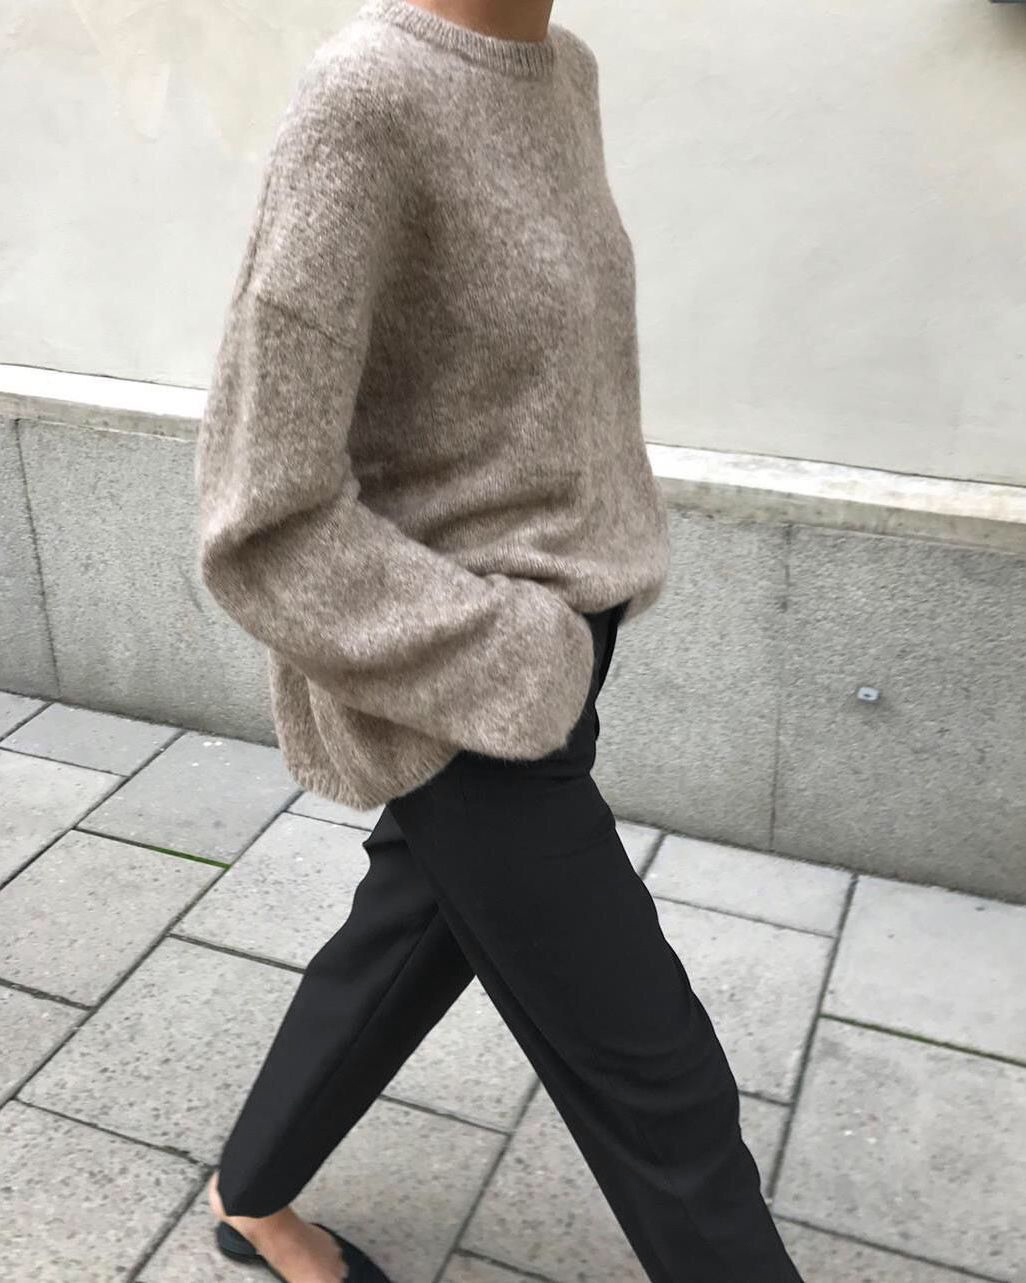 Easy Minimalist Instagram Outfit Idea: Neutral Oversized Sweater, Black Pants, and Mule Flats